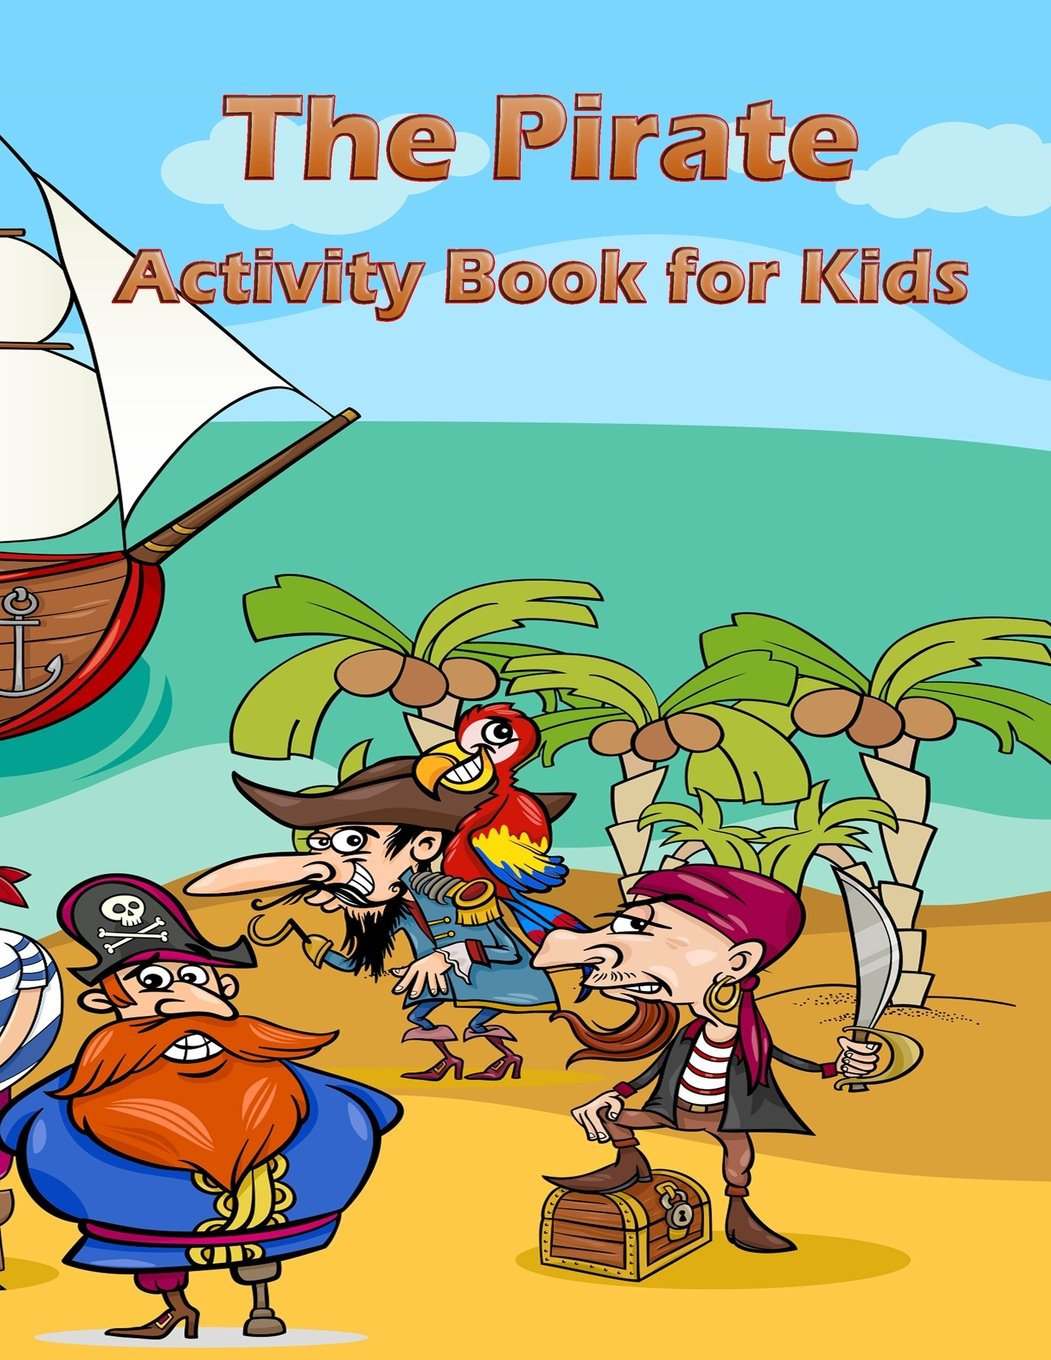 Download The Pirate Activity Book for Kids :: Many Funny Activites for Kids Ages 3-8 in The Pirate Theme, Dot to Dot, Color by Number, Coloring Pages, Maze, How to Draw Dino and Picture Matching (Volume 1) PDF